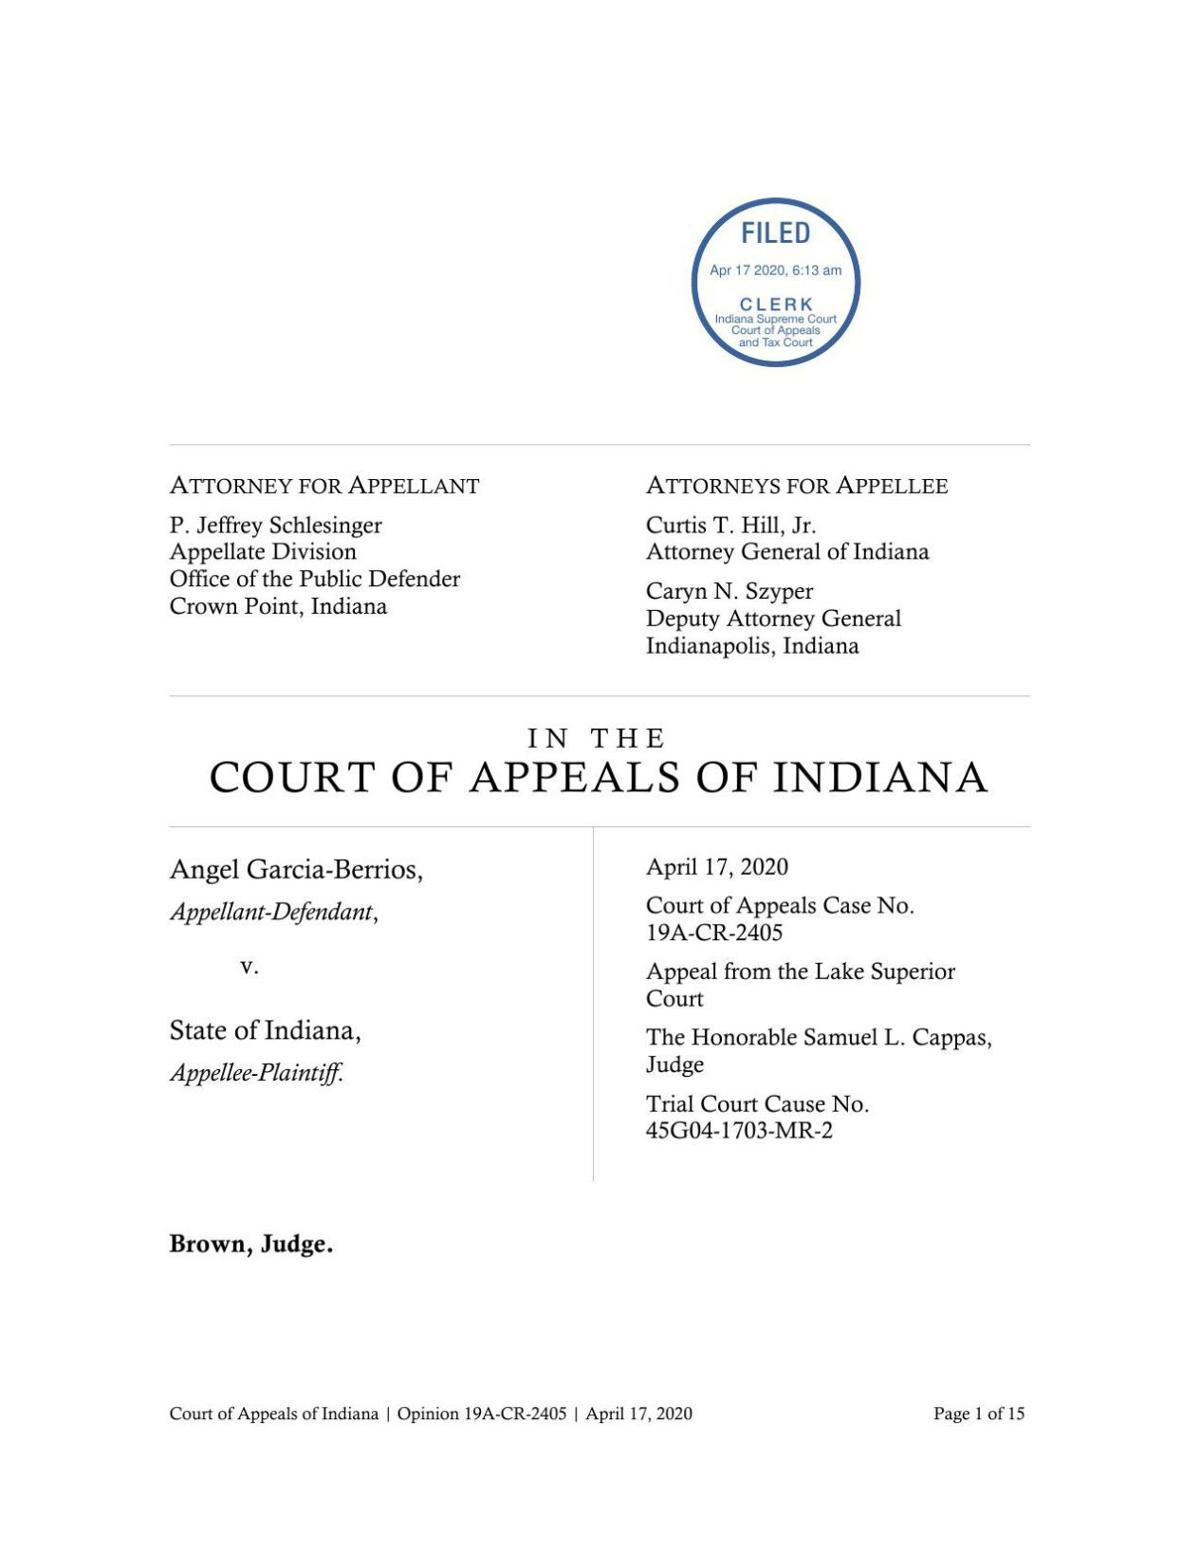 Garcia-Berrios v. State ruling of Indiana Court of Appeals